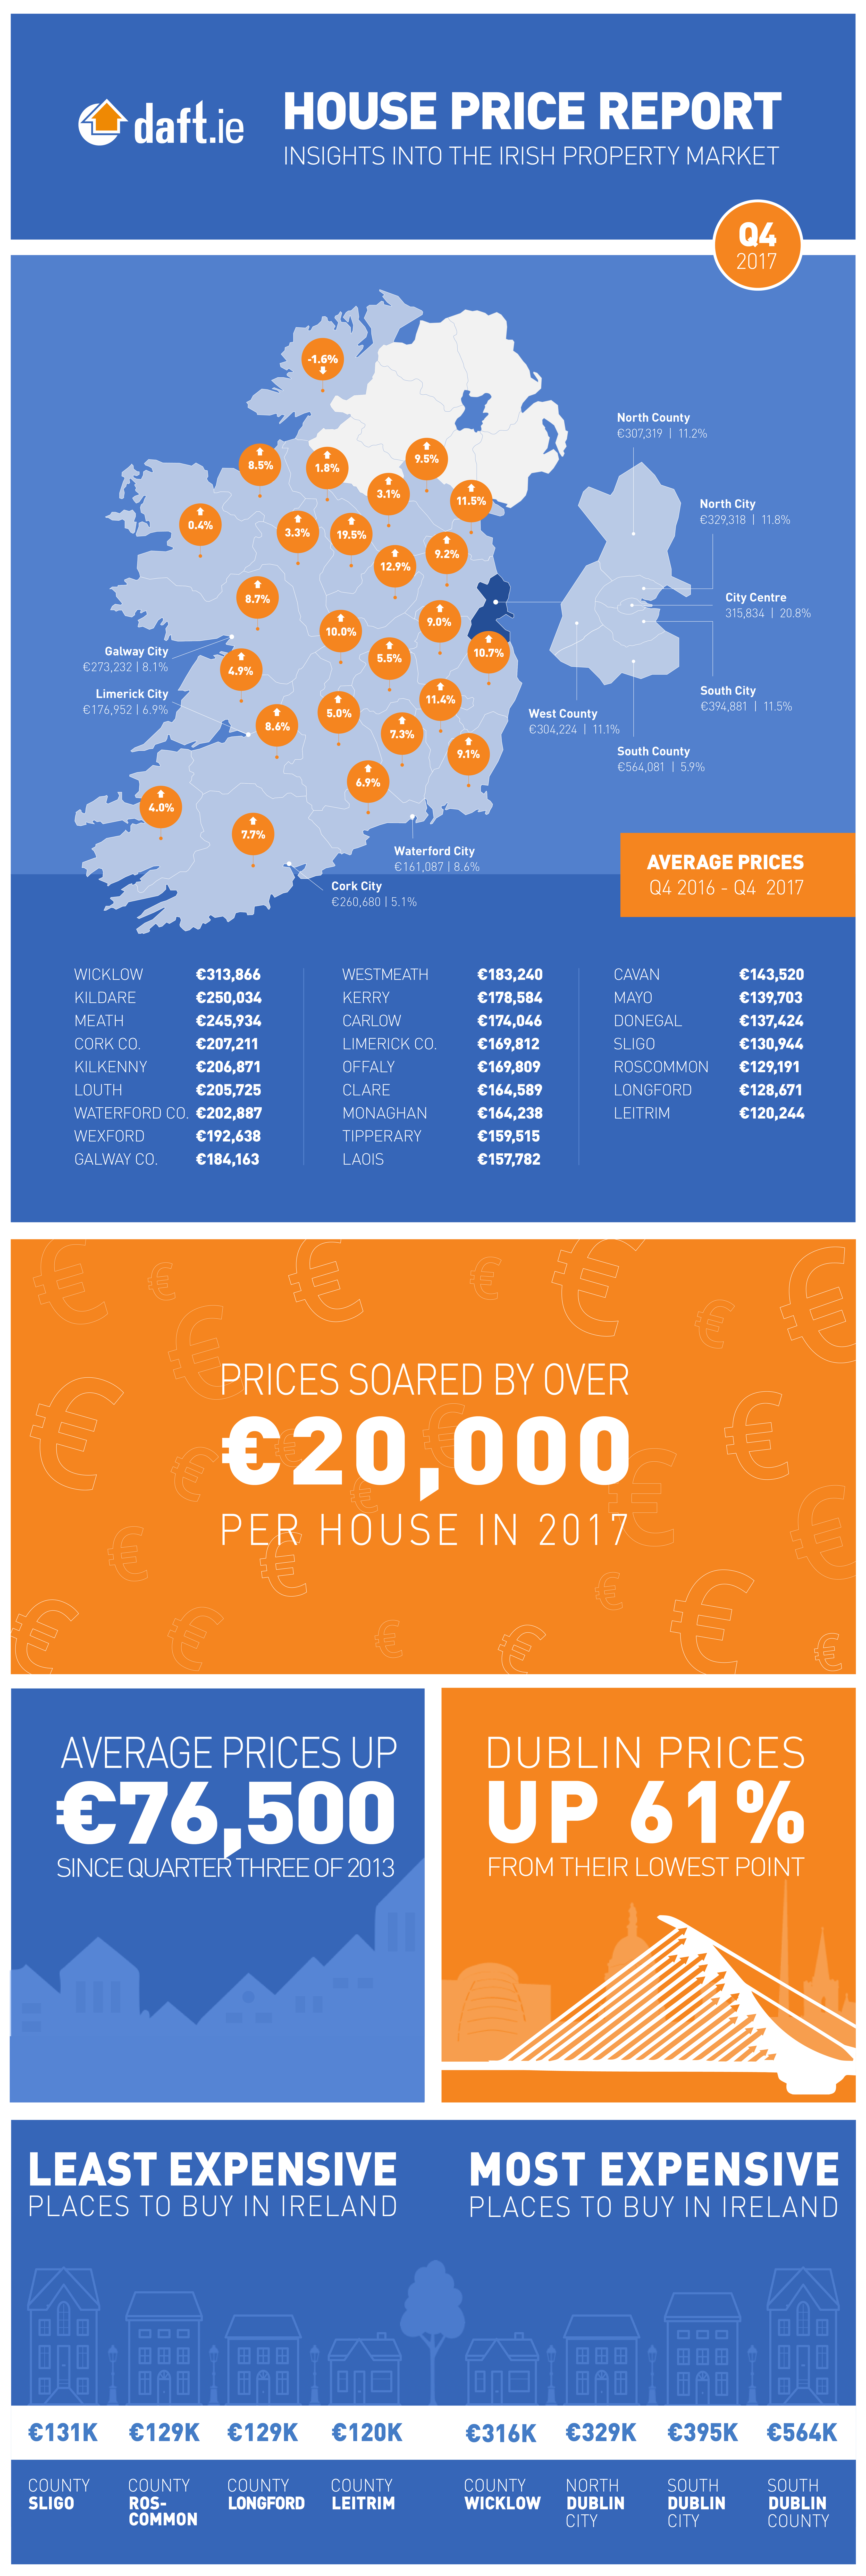 Daft.ie House Price Report: Q4 2017 Infographic